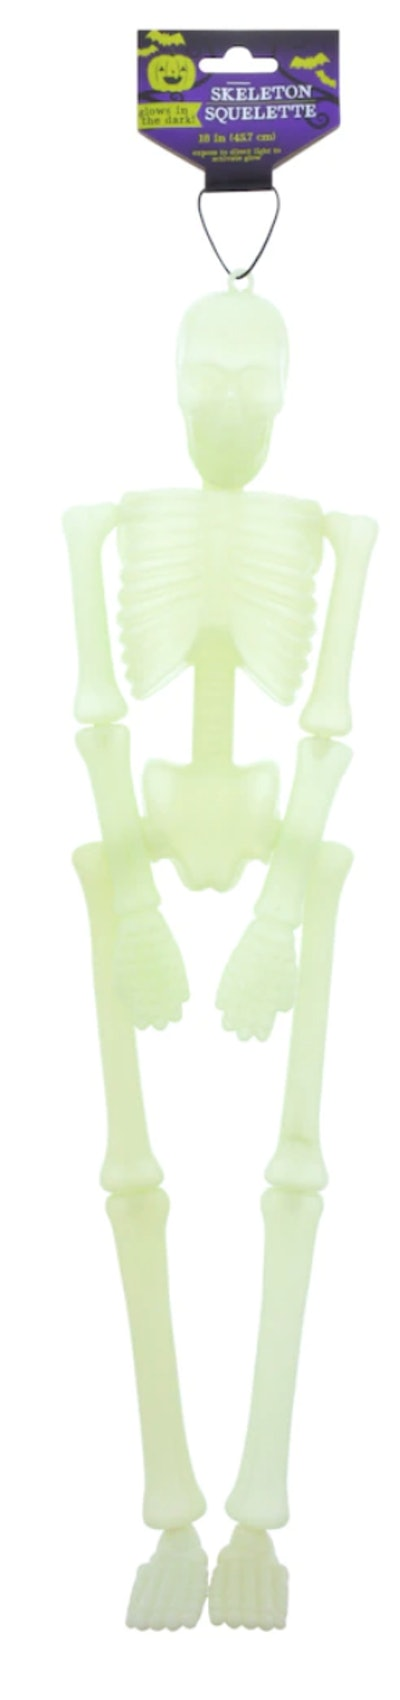 Image of a glow-in-the-dark hanging skeleton decoration.